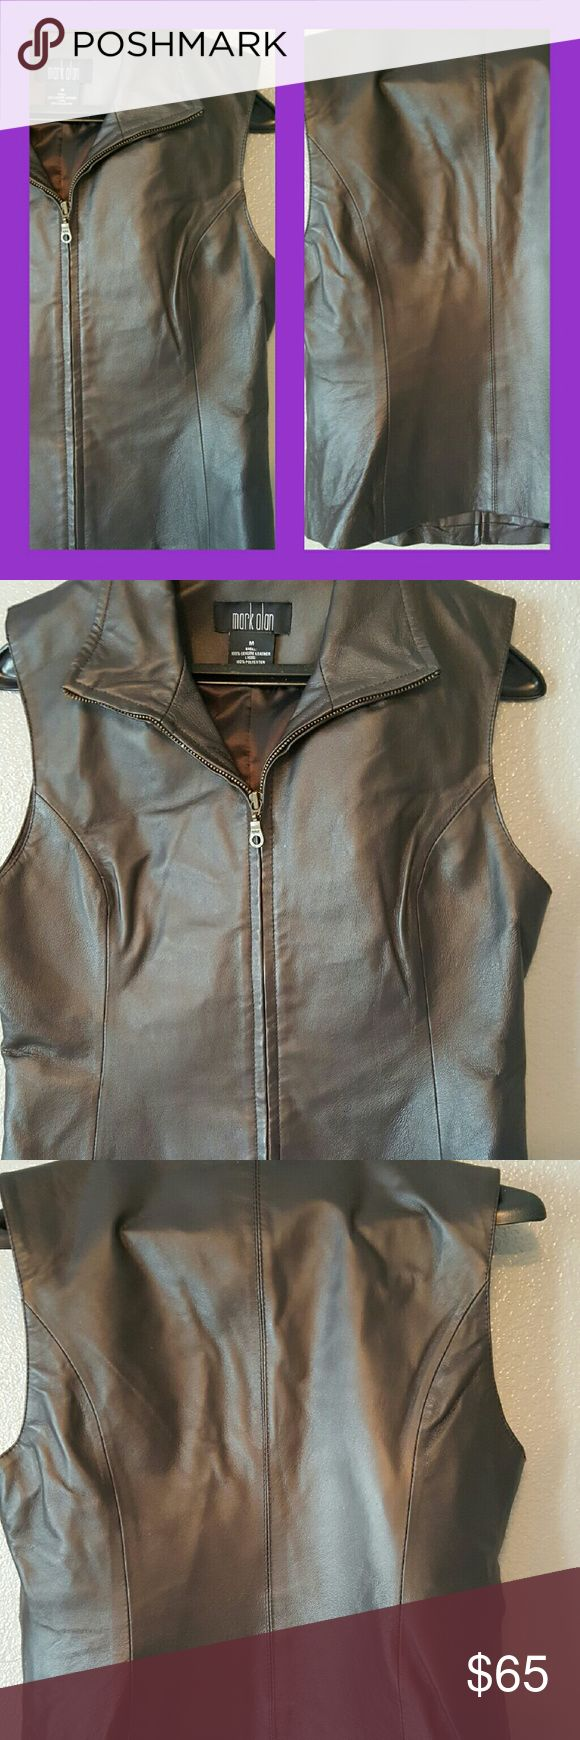 New list..Excellent condition real leather vest. 100% Real leather sleeveless vest. Add a punch to any outfit with this jewel. Mark Alan Jackets & Coats Vests